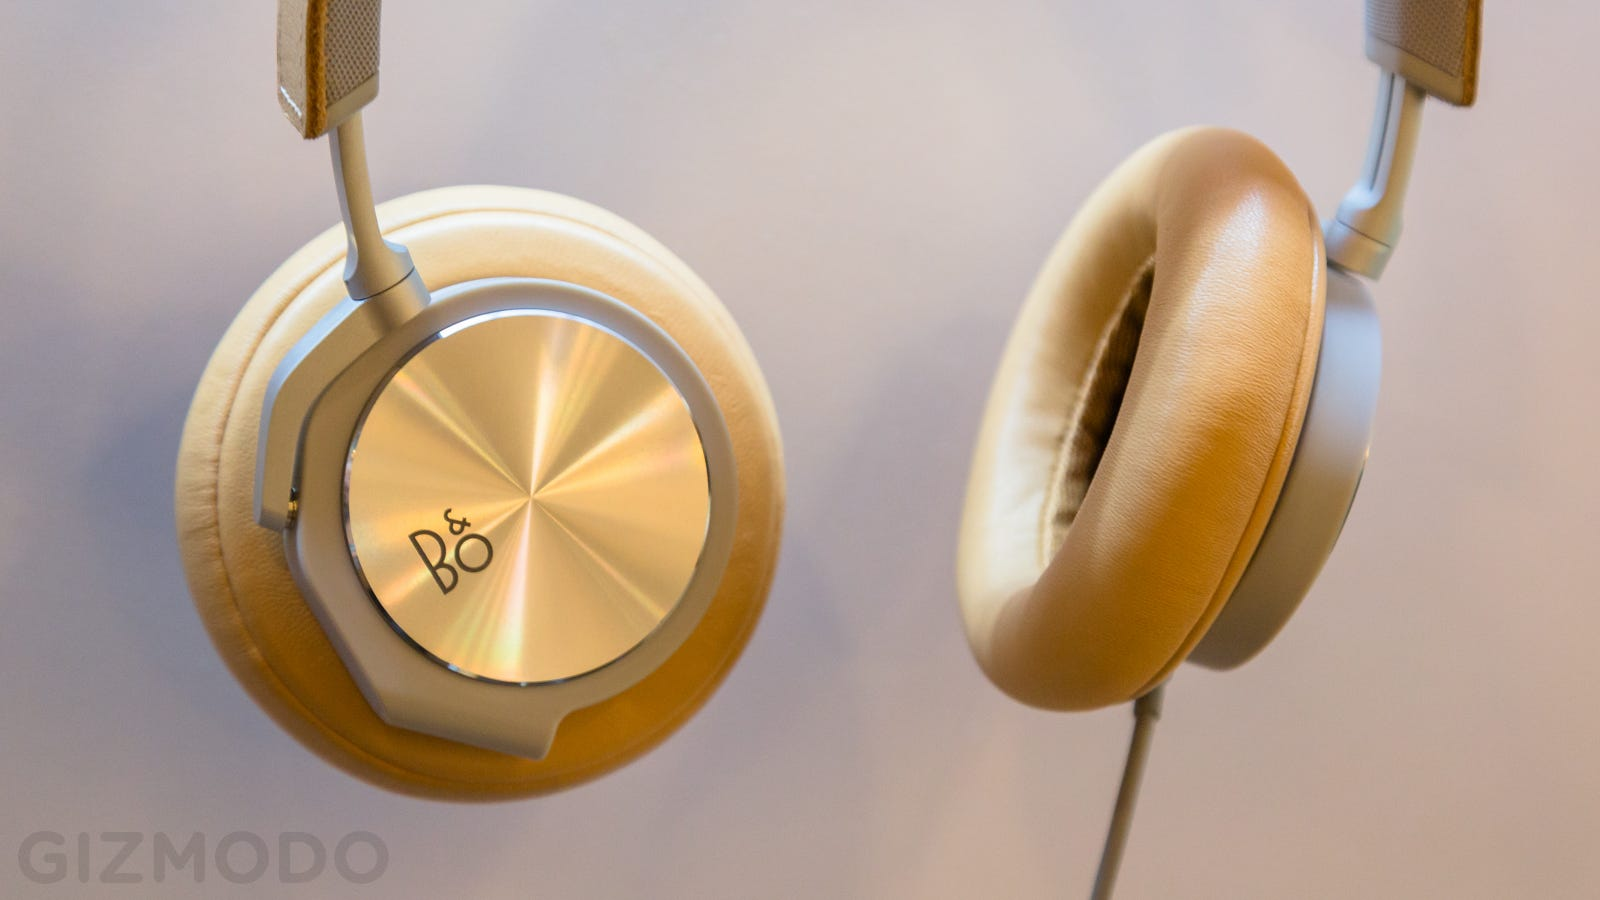 vmoda headphone cable orange - B&O H6 Headphones Are So Beautiful and Fancy They'll Fool Your Brain